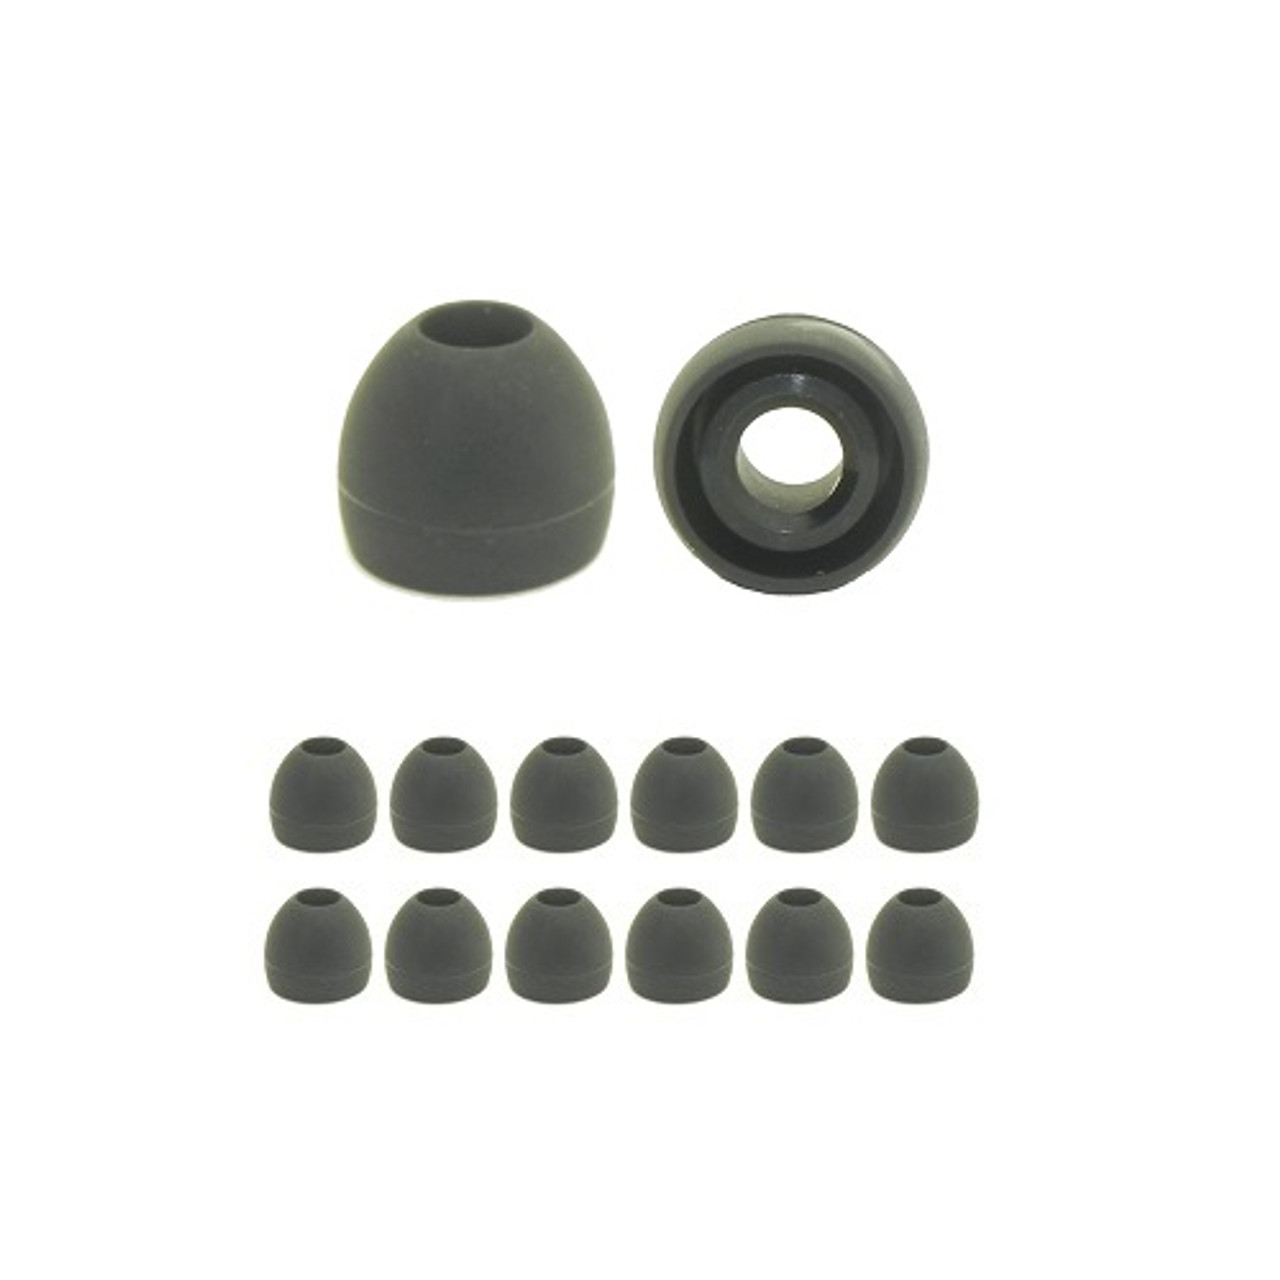 JBL extra small earbuds